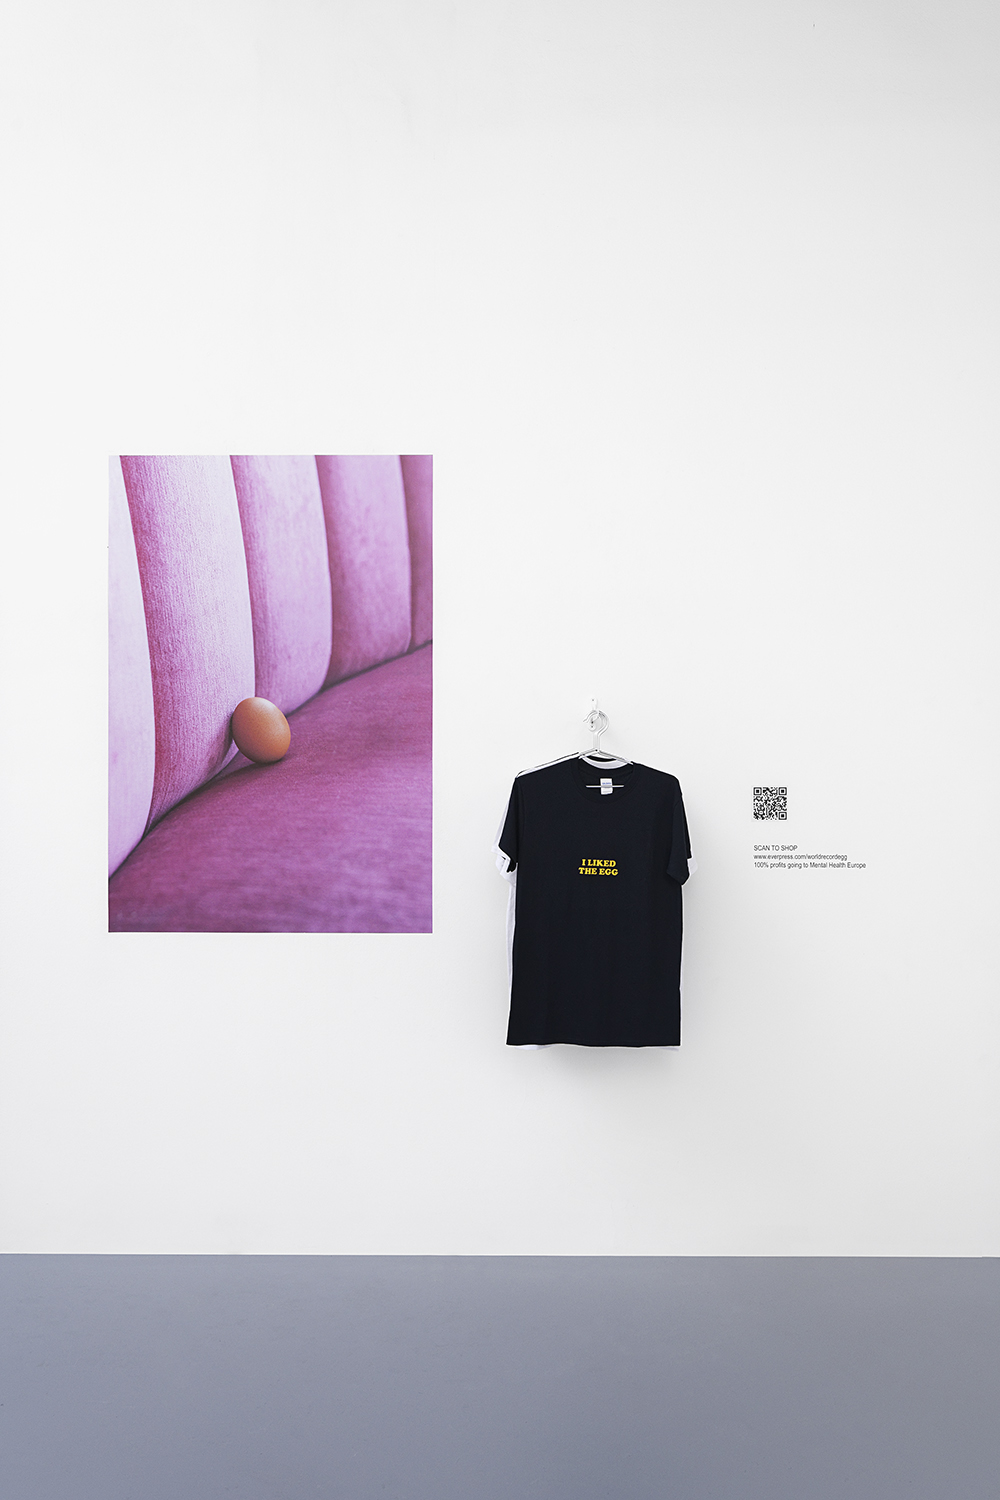 @world_record_egg, 2019 Visual : courtesy of Eddie Lee / HYPEBEAST, poster, T-Shirts, variable dimensions. — Galerie Éric Hussenot, Paris